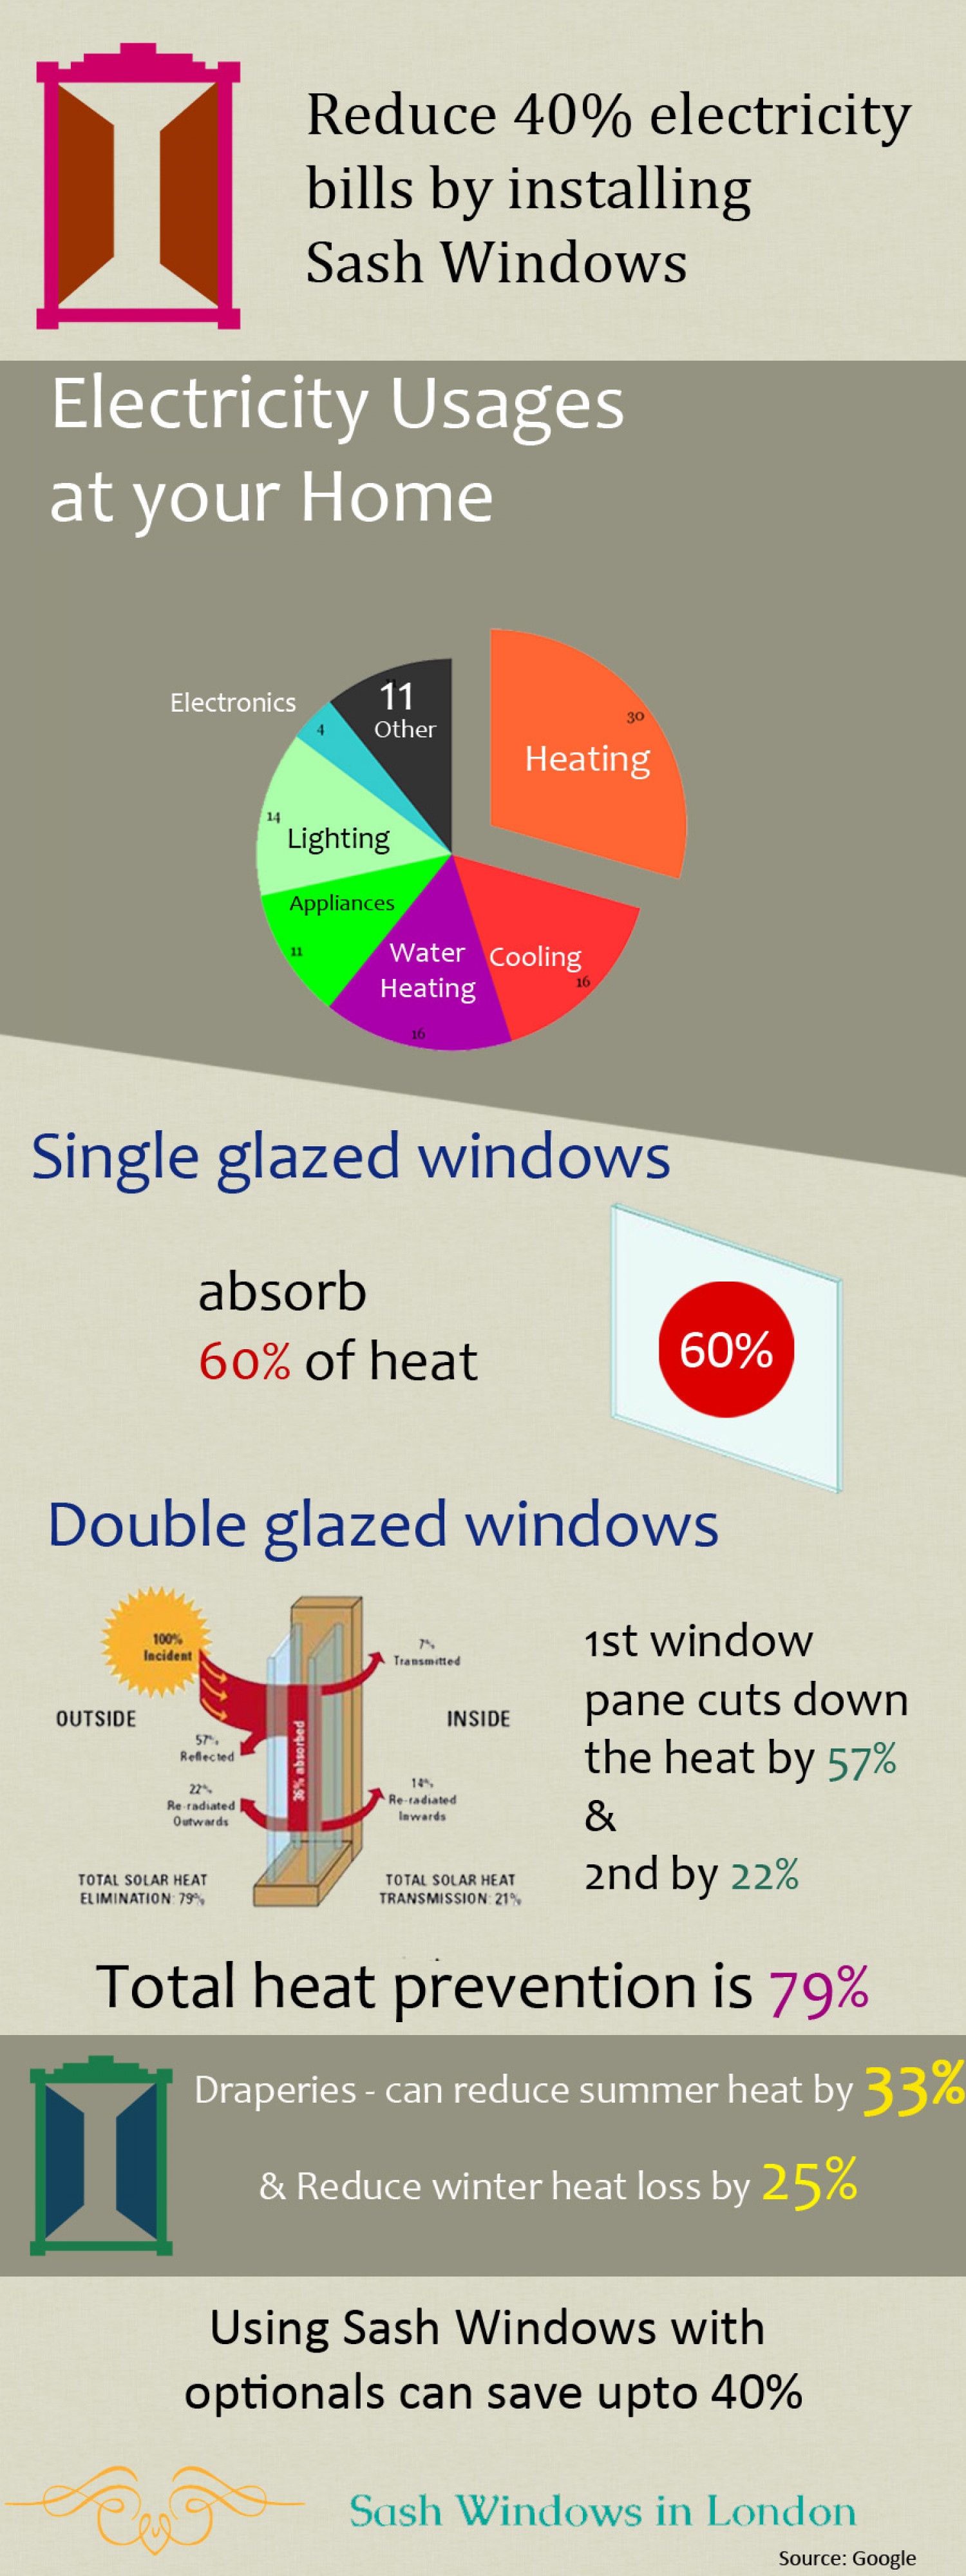 Reduce 40% electricity bills by installing Sash Windows Infographic